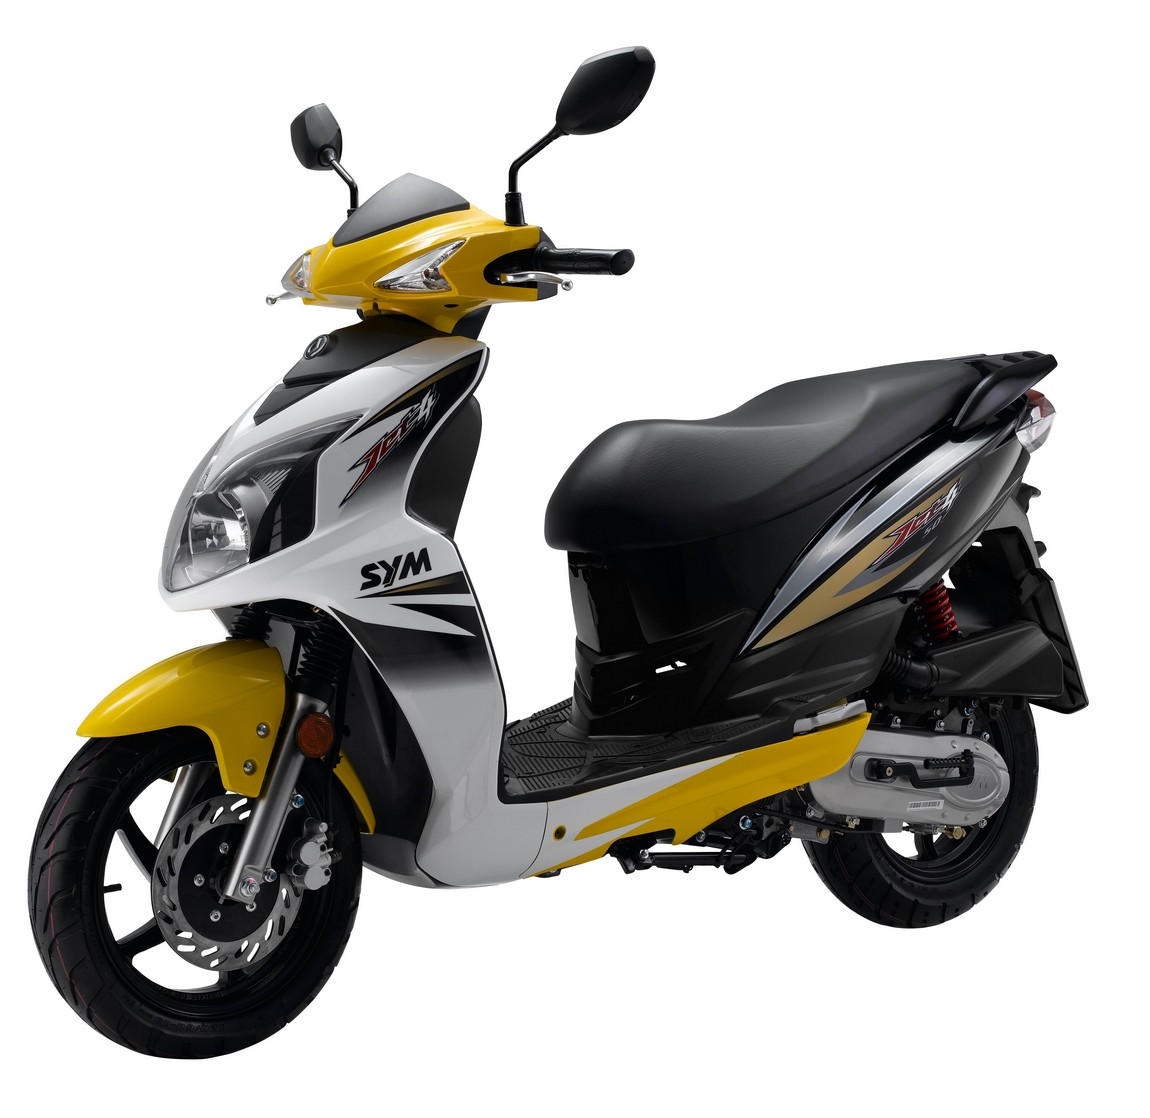 sym jet 4 125cc technical data power torque fuel consumption. Black Bedroom Furniture Sets. Home Design Ideas